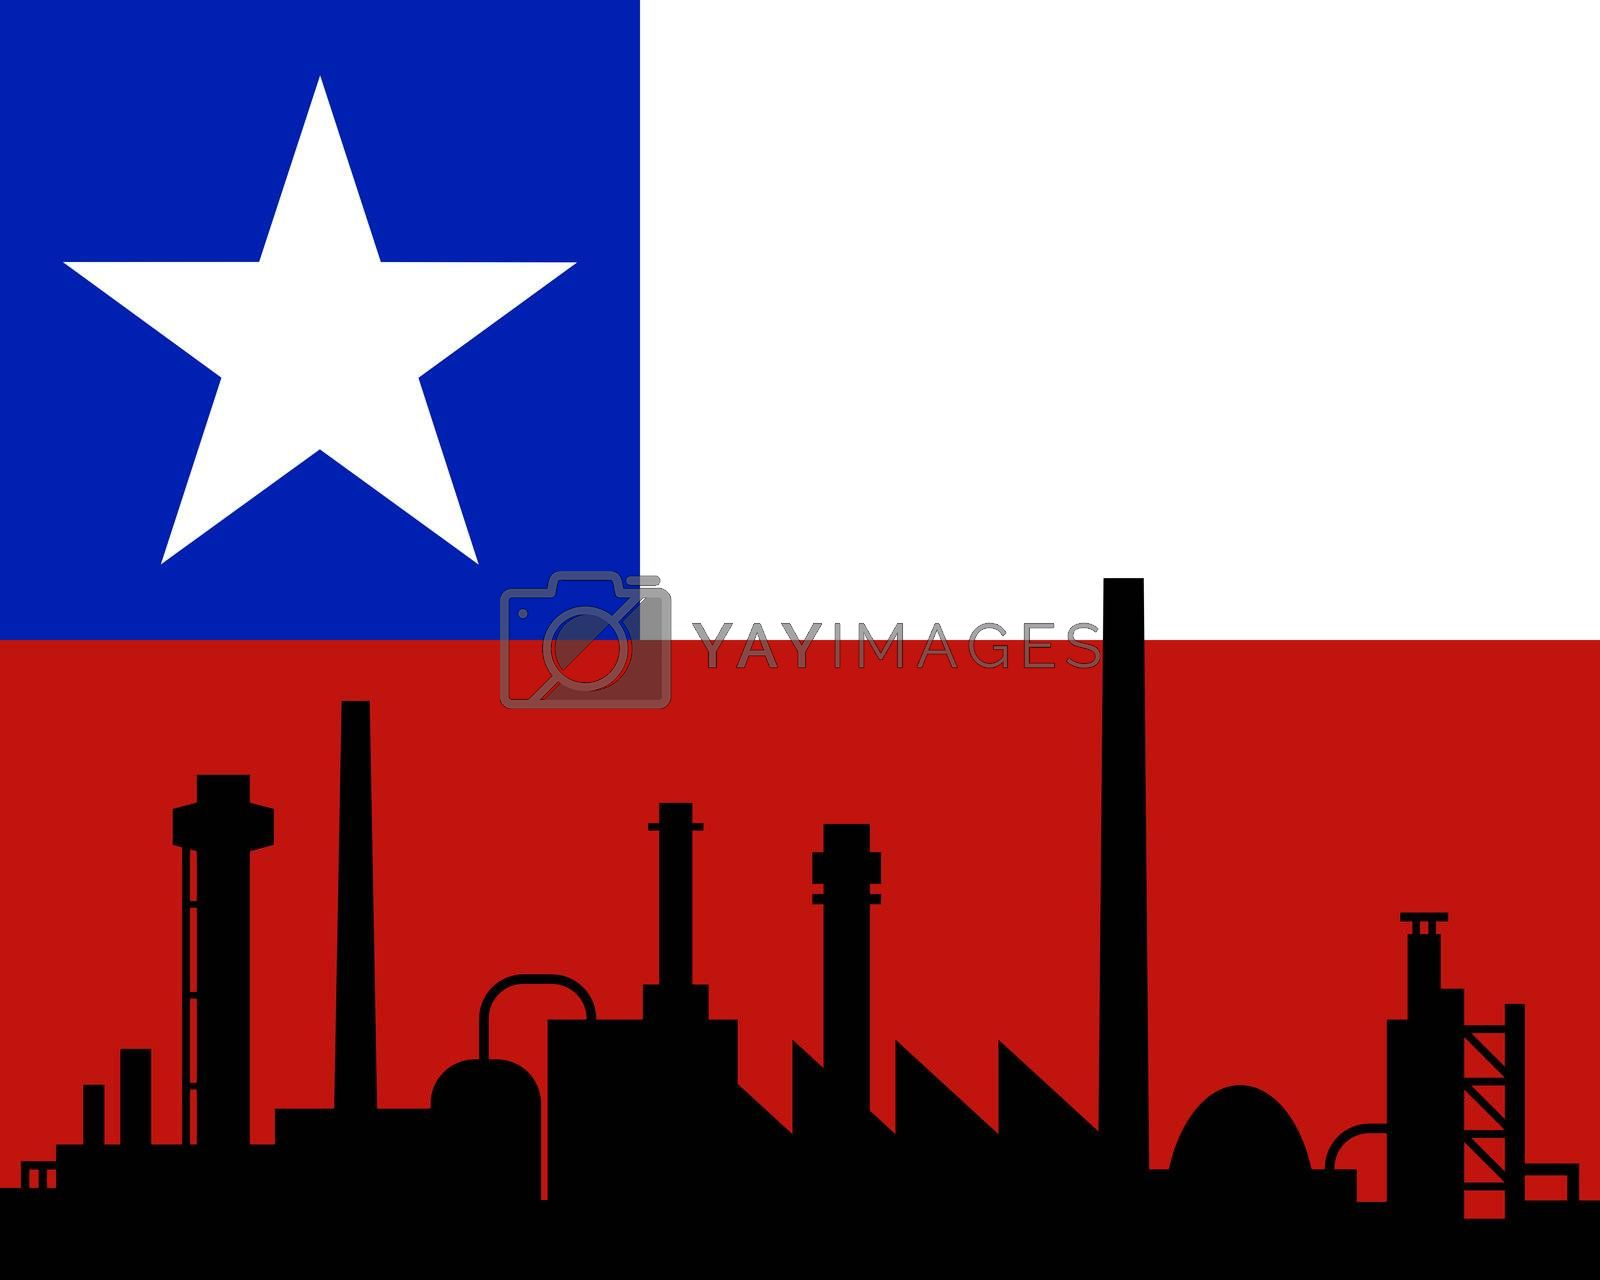 Industry and flag of Chile